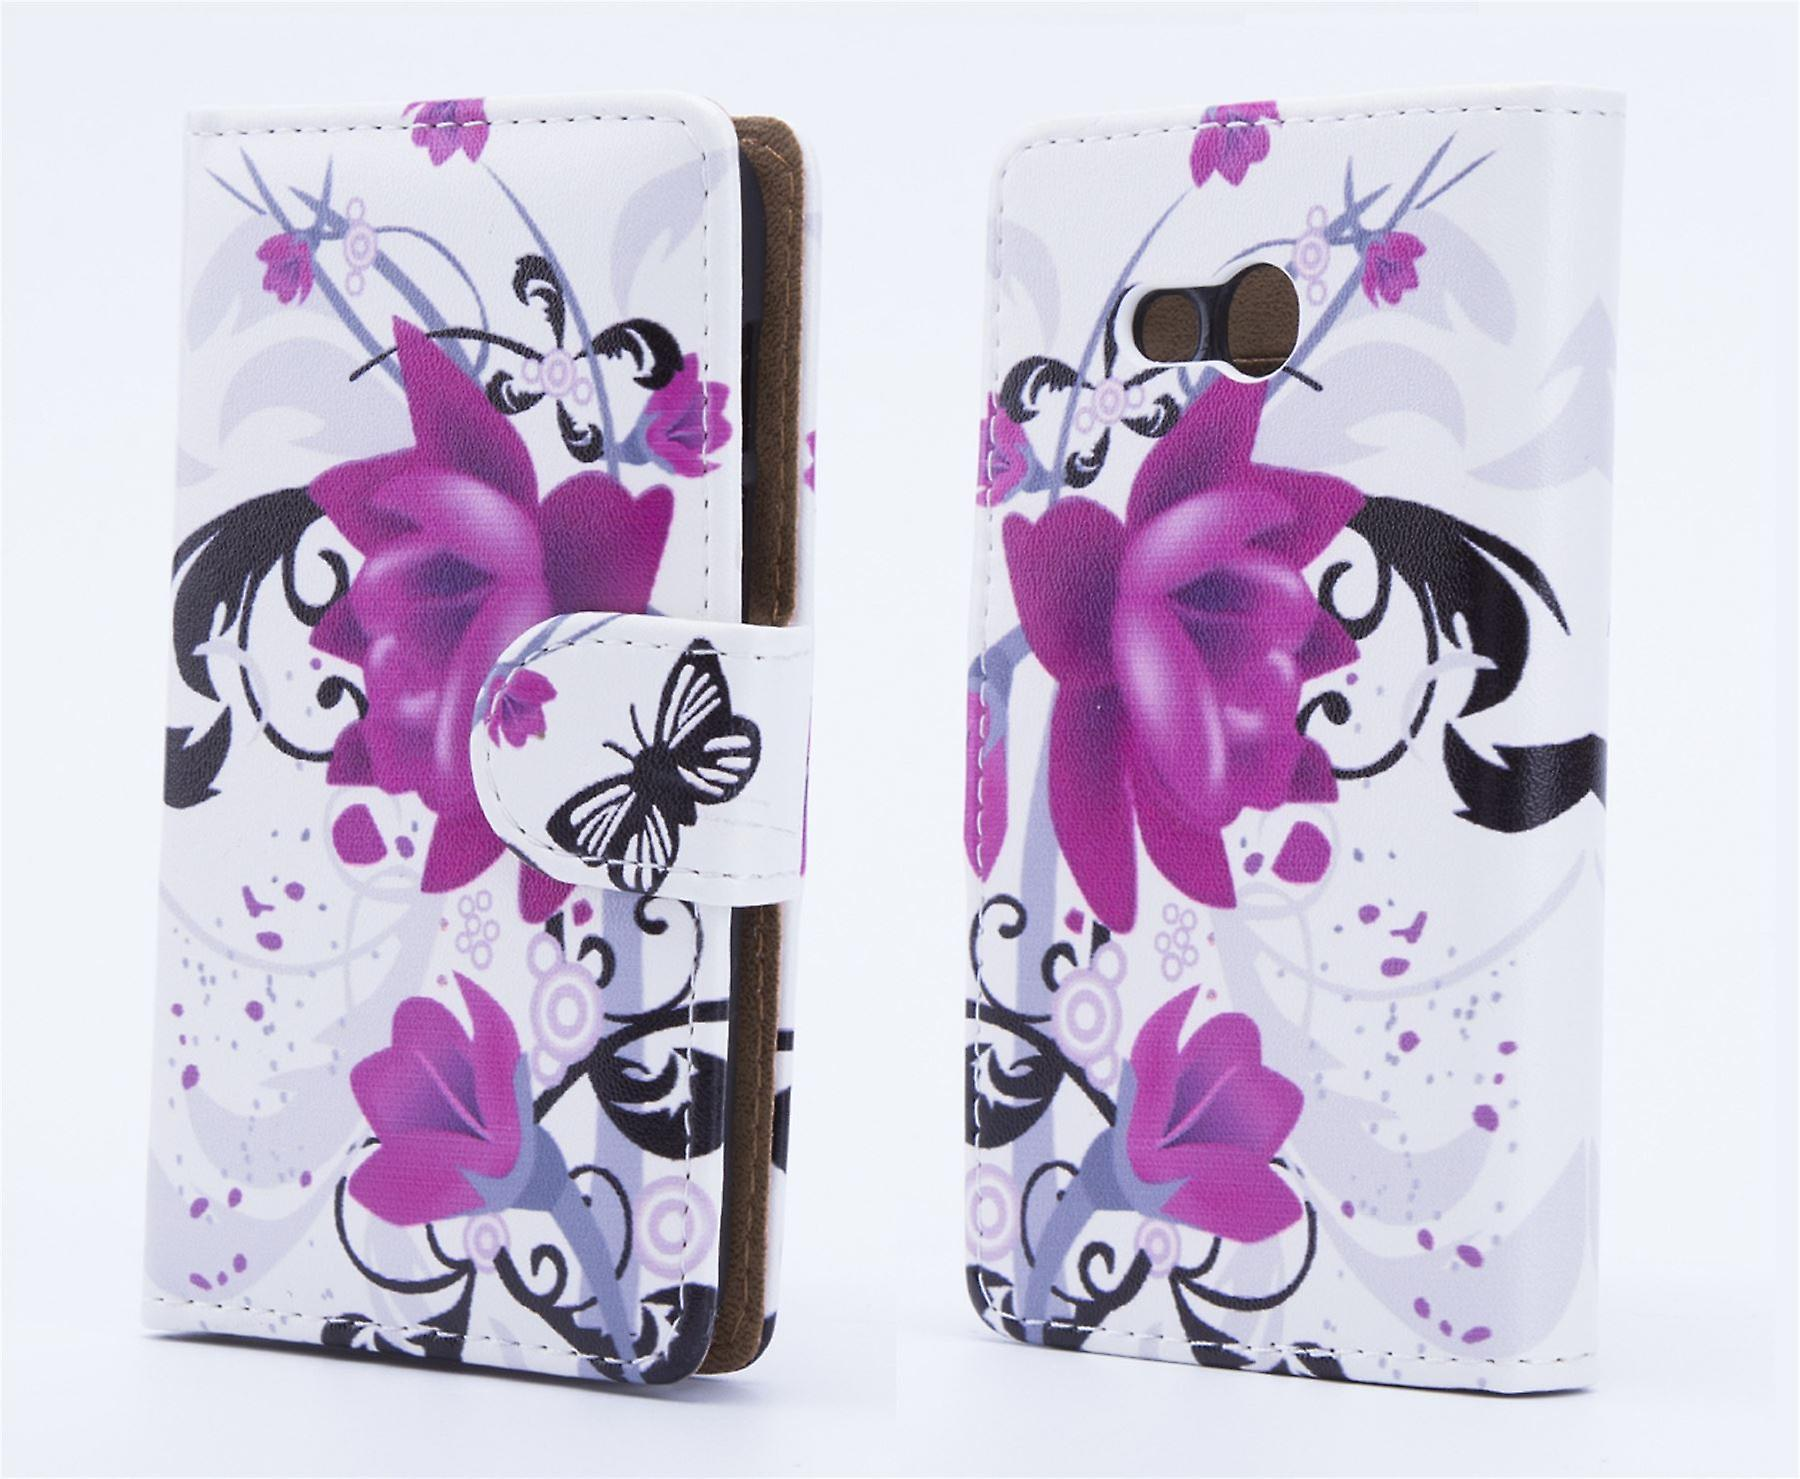 Design book for Alcatel Pixi 4 (5.5) - Purple Rose